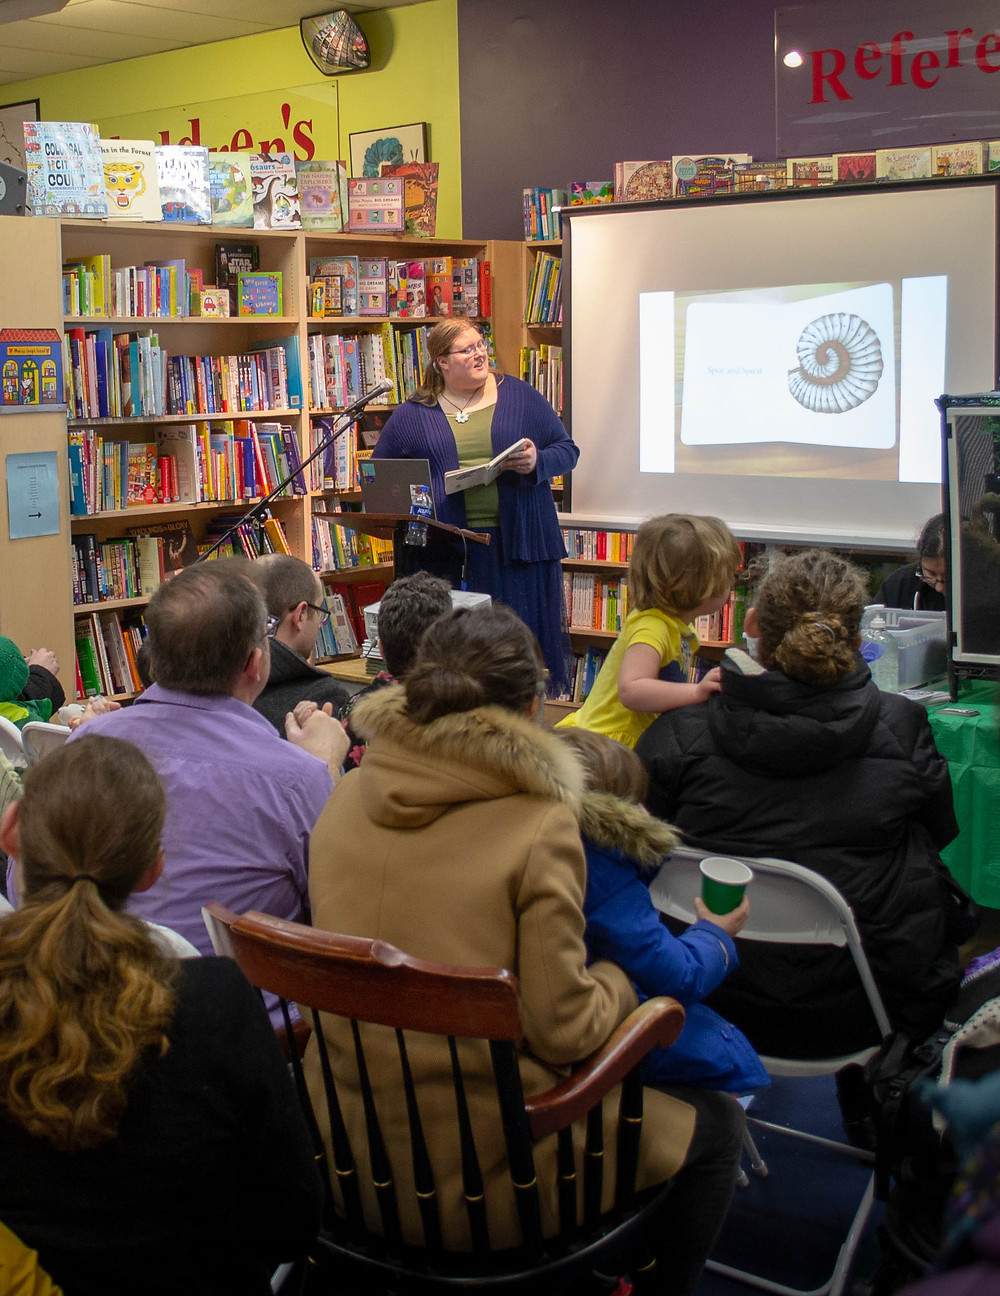 A photo of me reading from the book at the podium with the projector, part of the audience, and part of the animal table pictured.